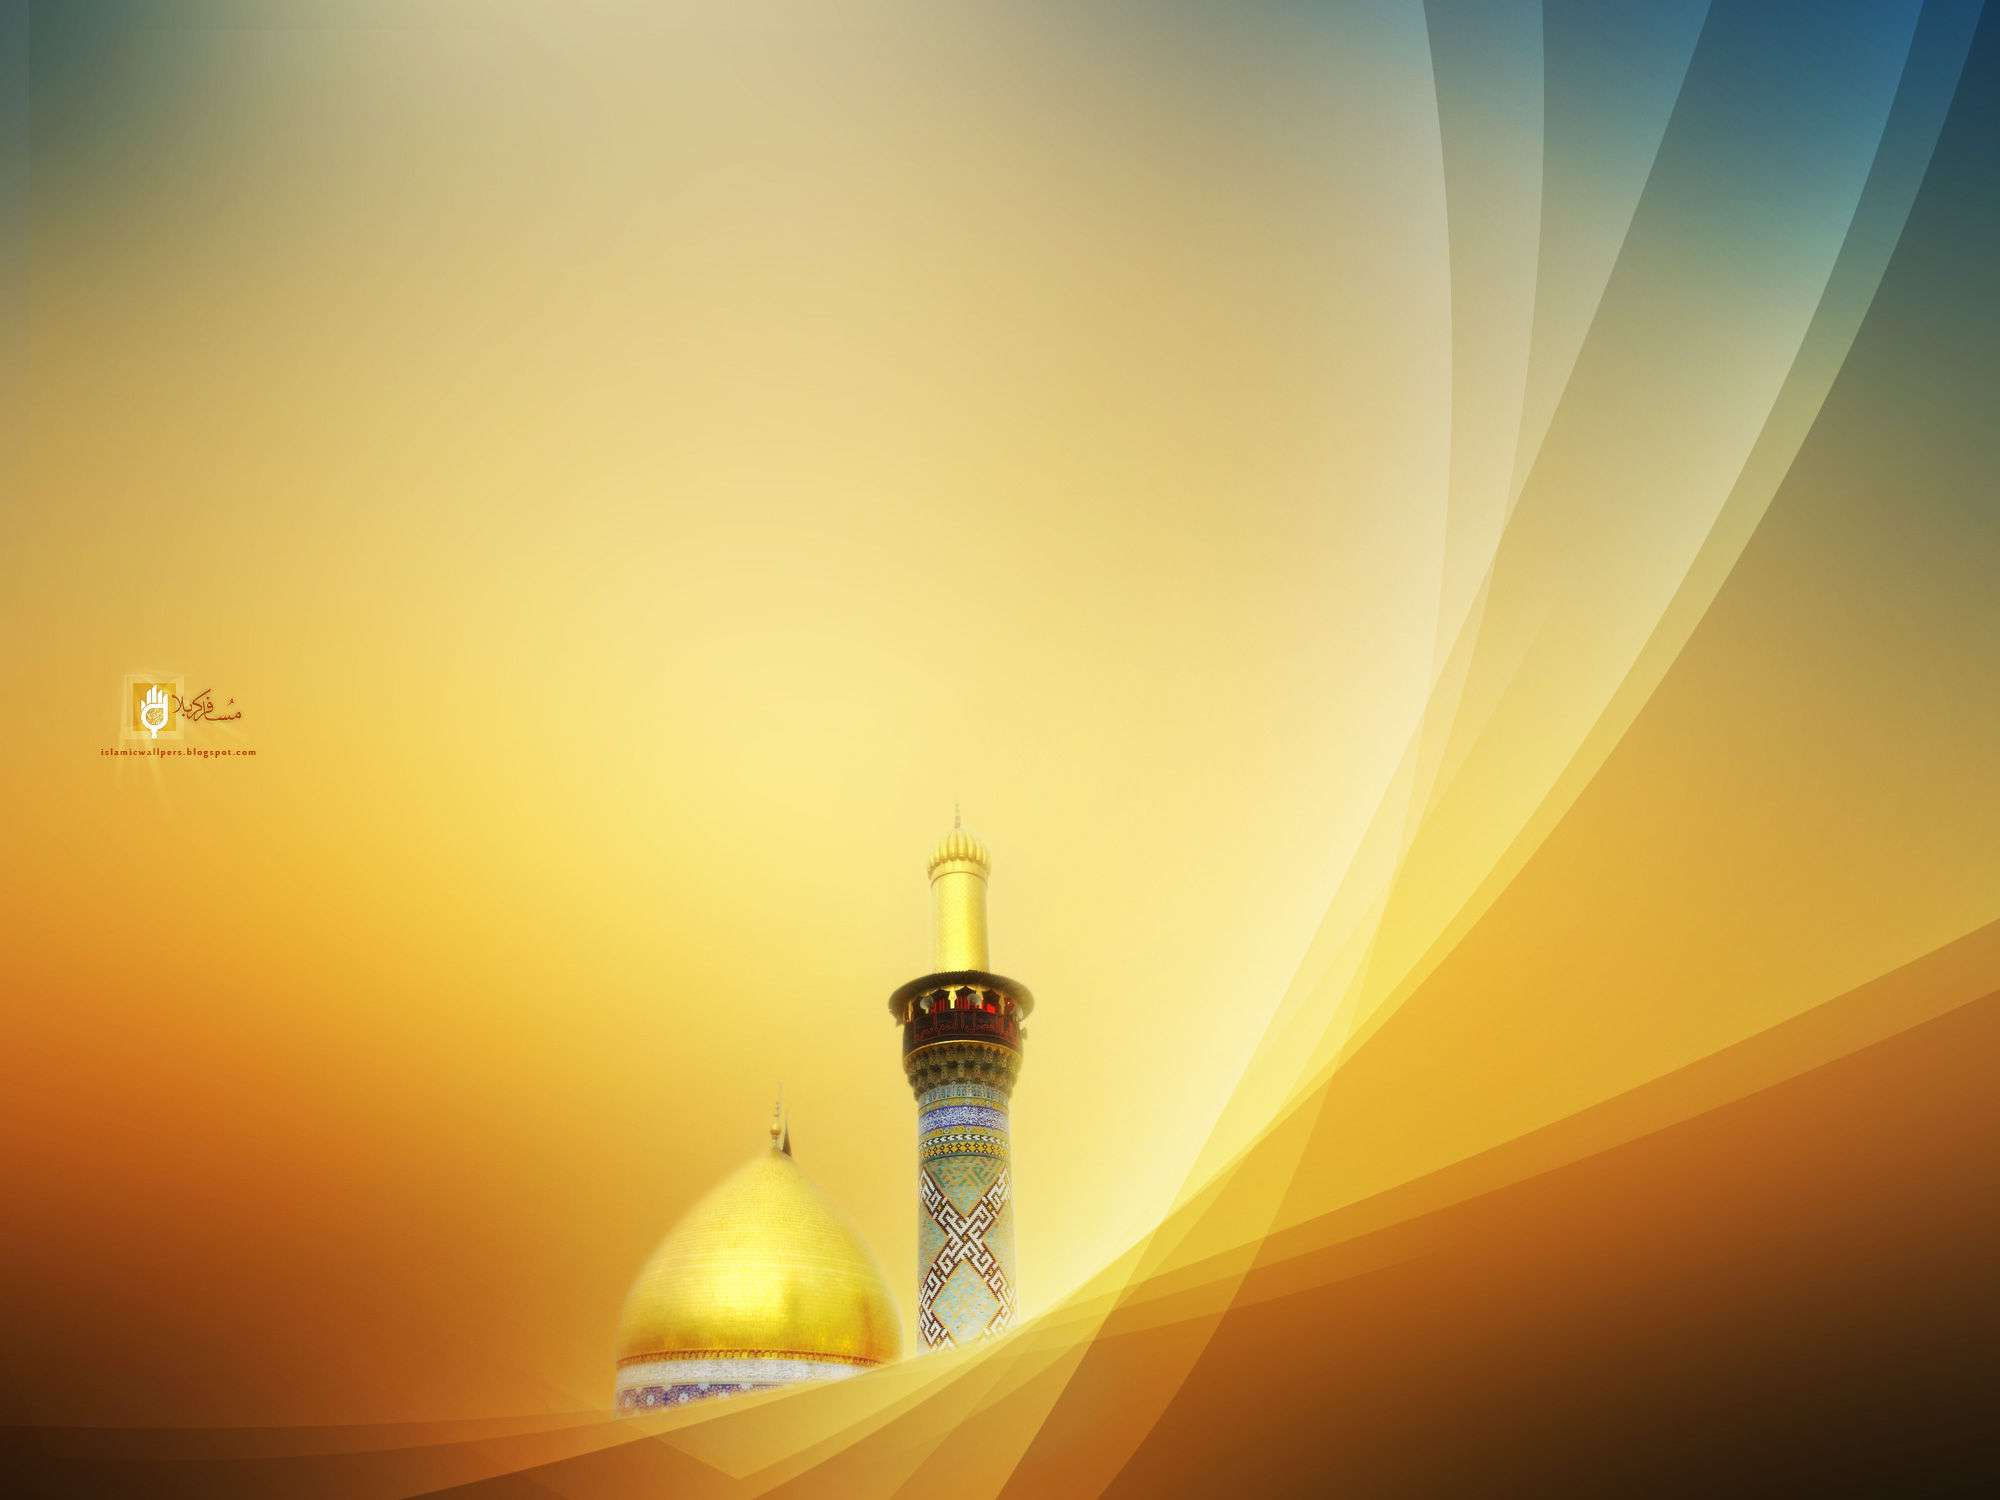 Islam Wallpaper 027